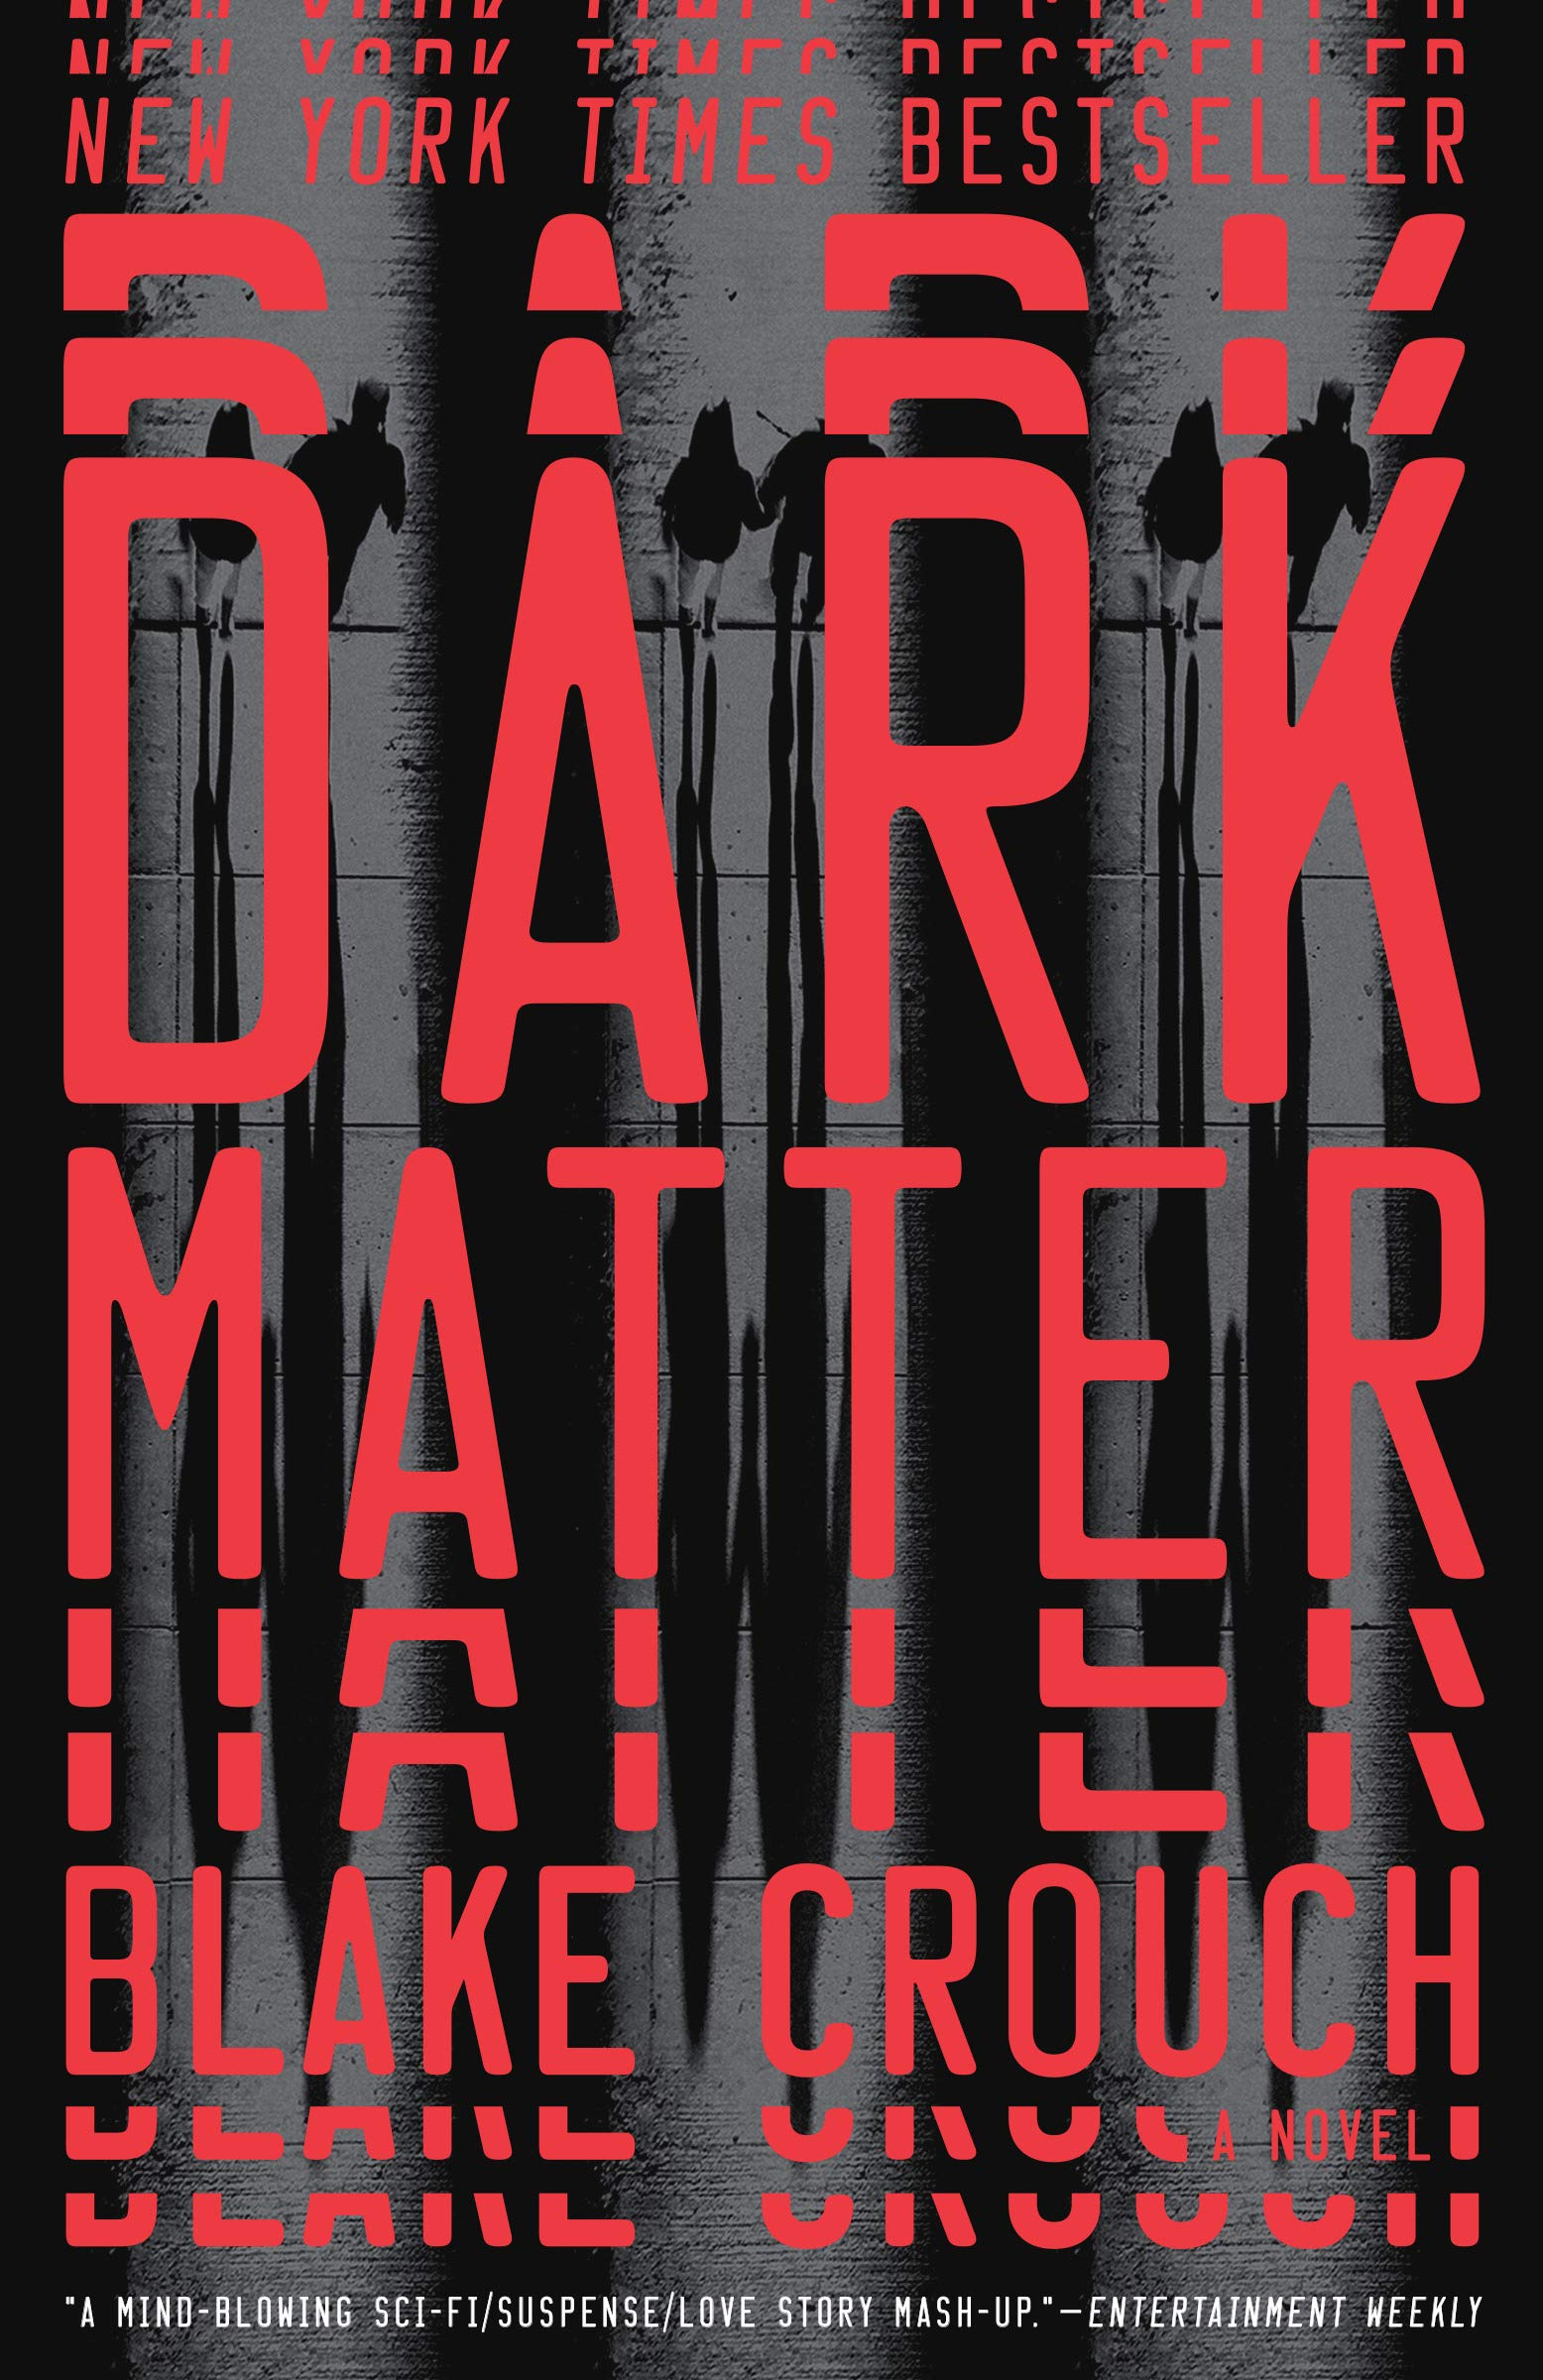 The cover of Dark Matter